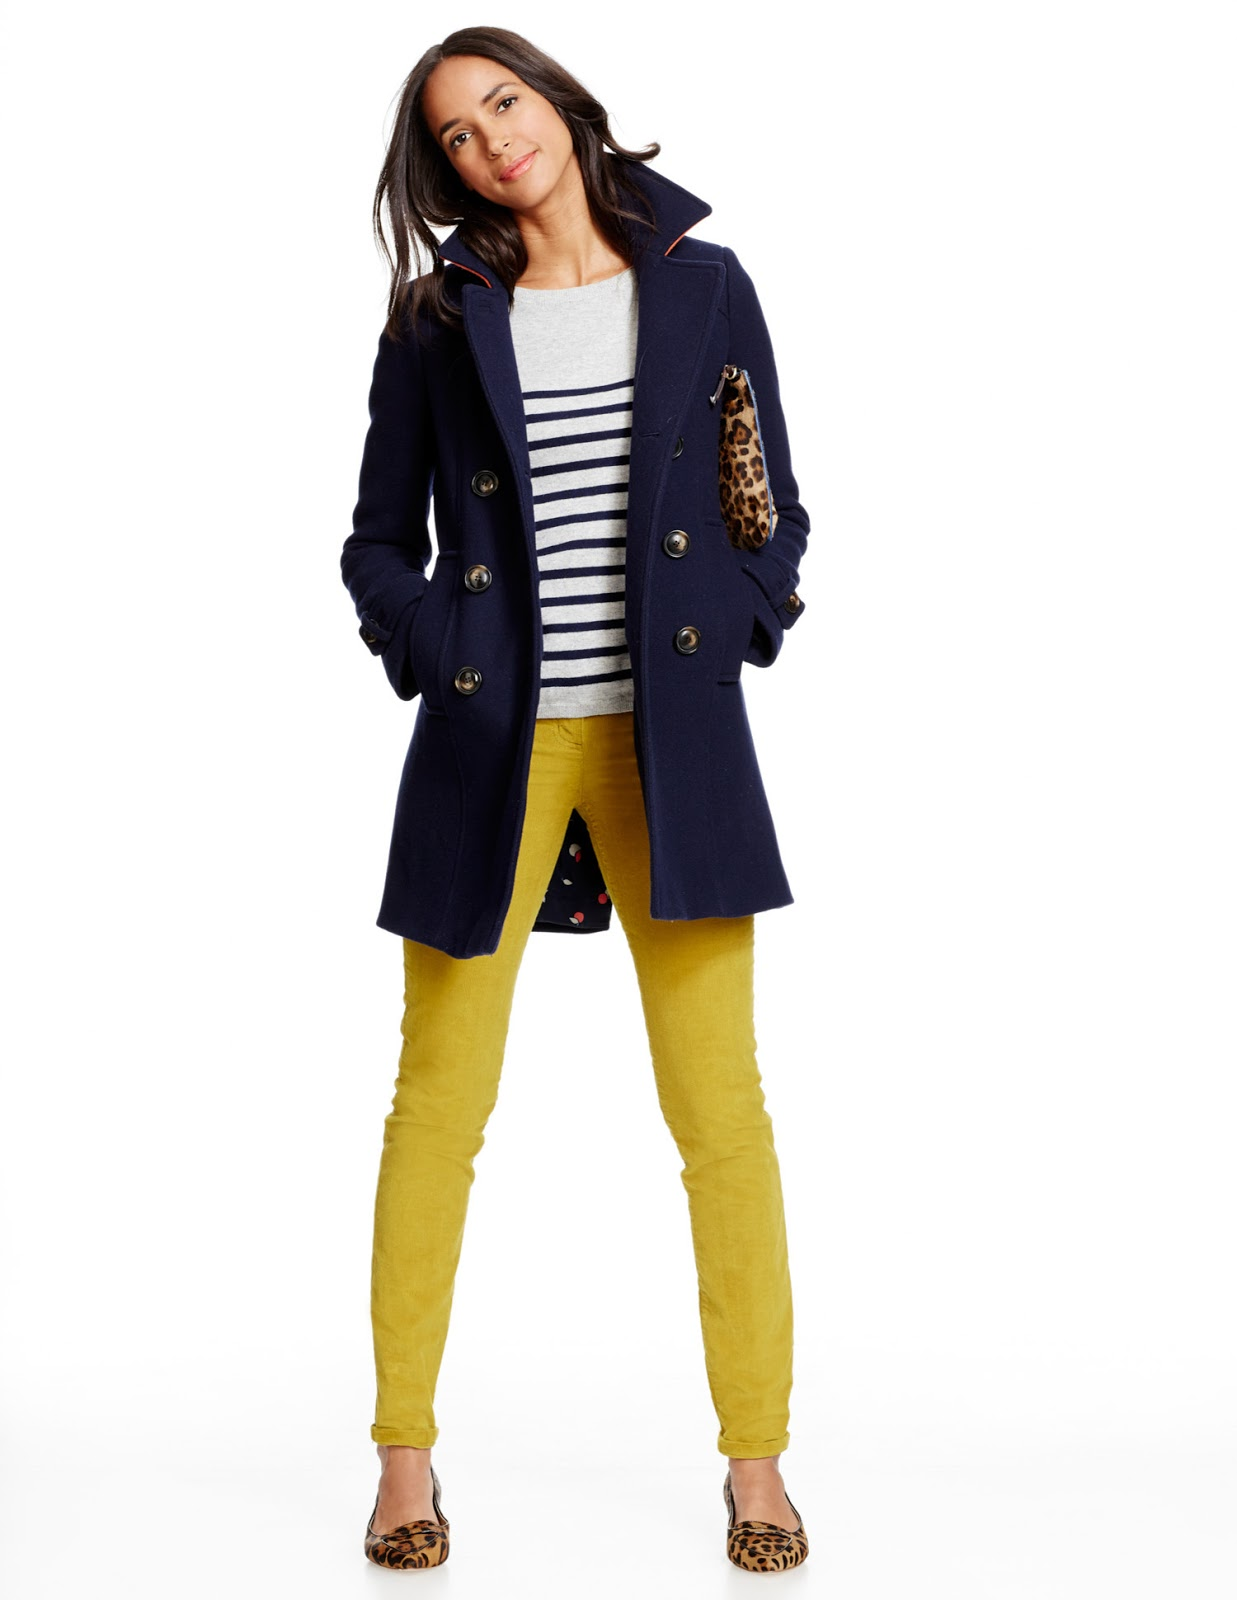 Boden Fall London Collection